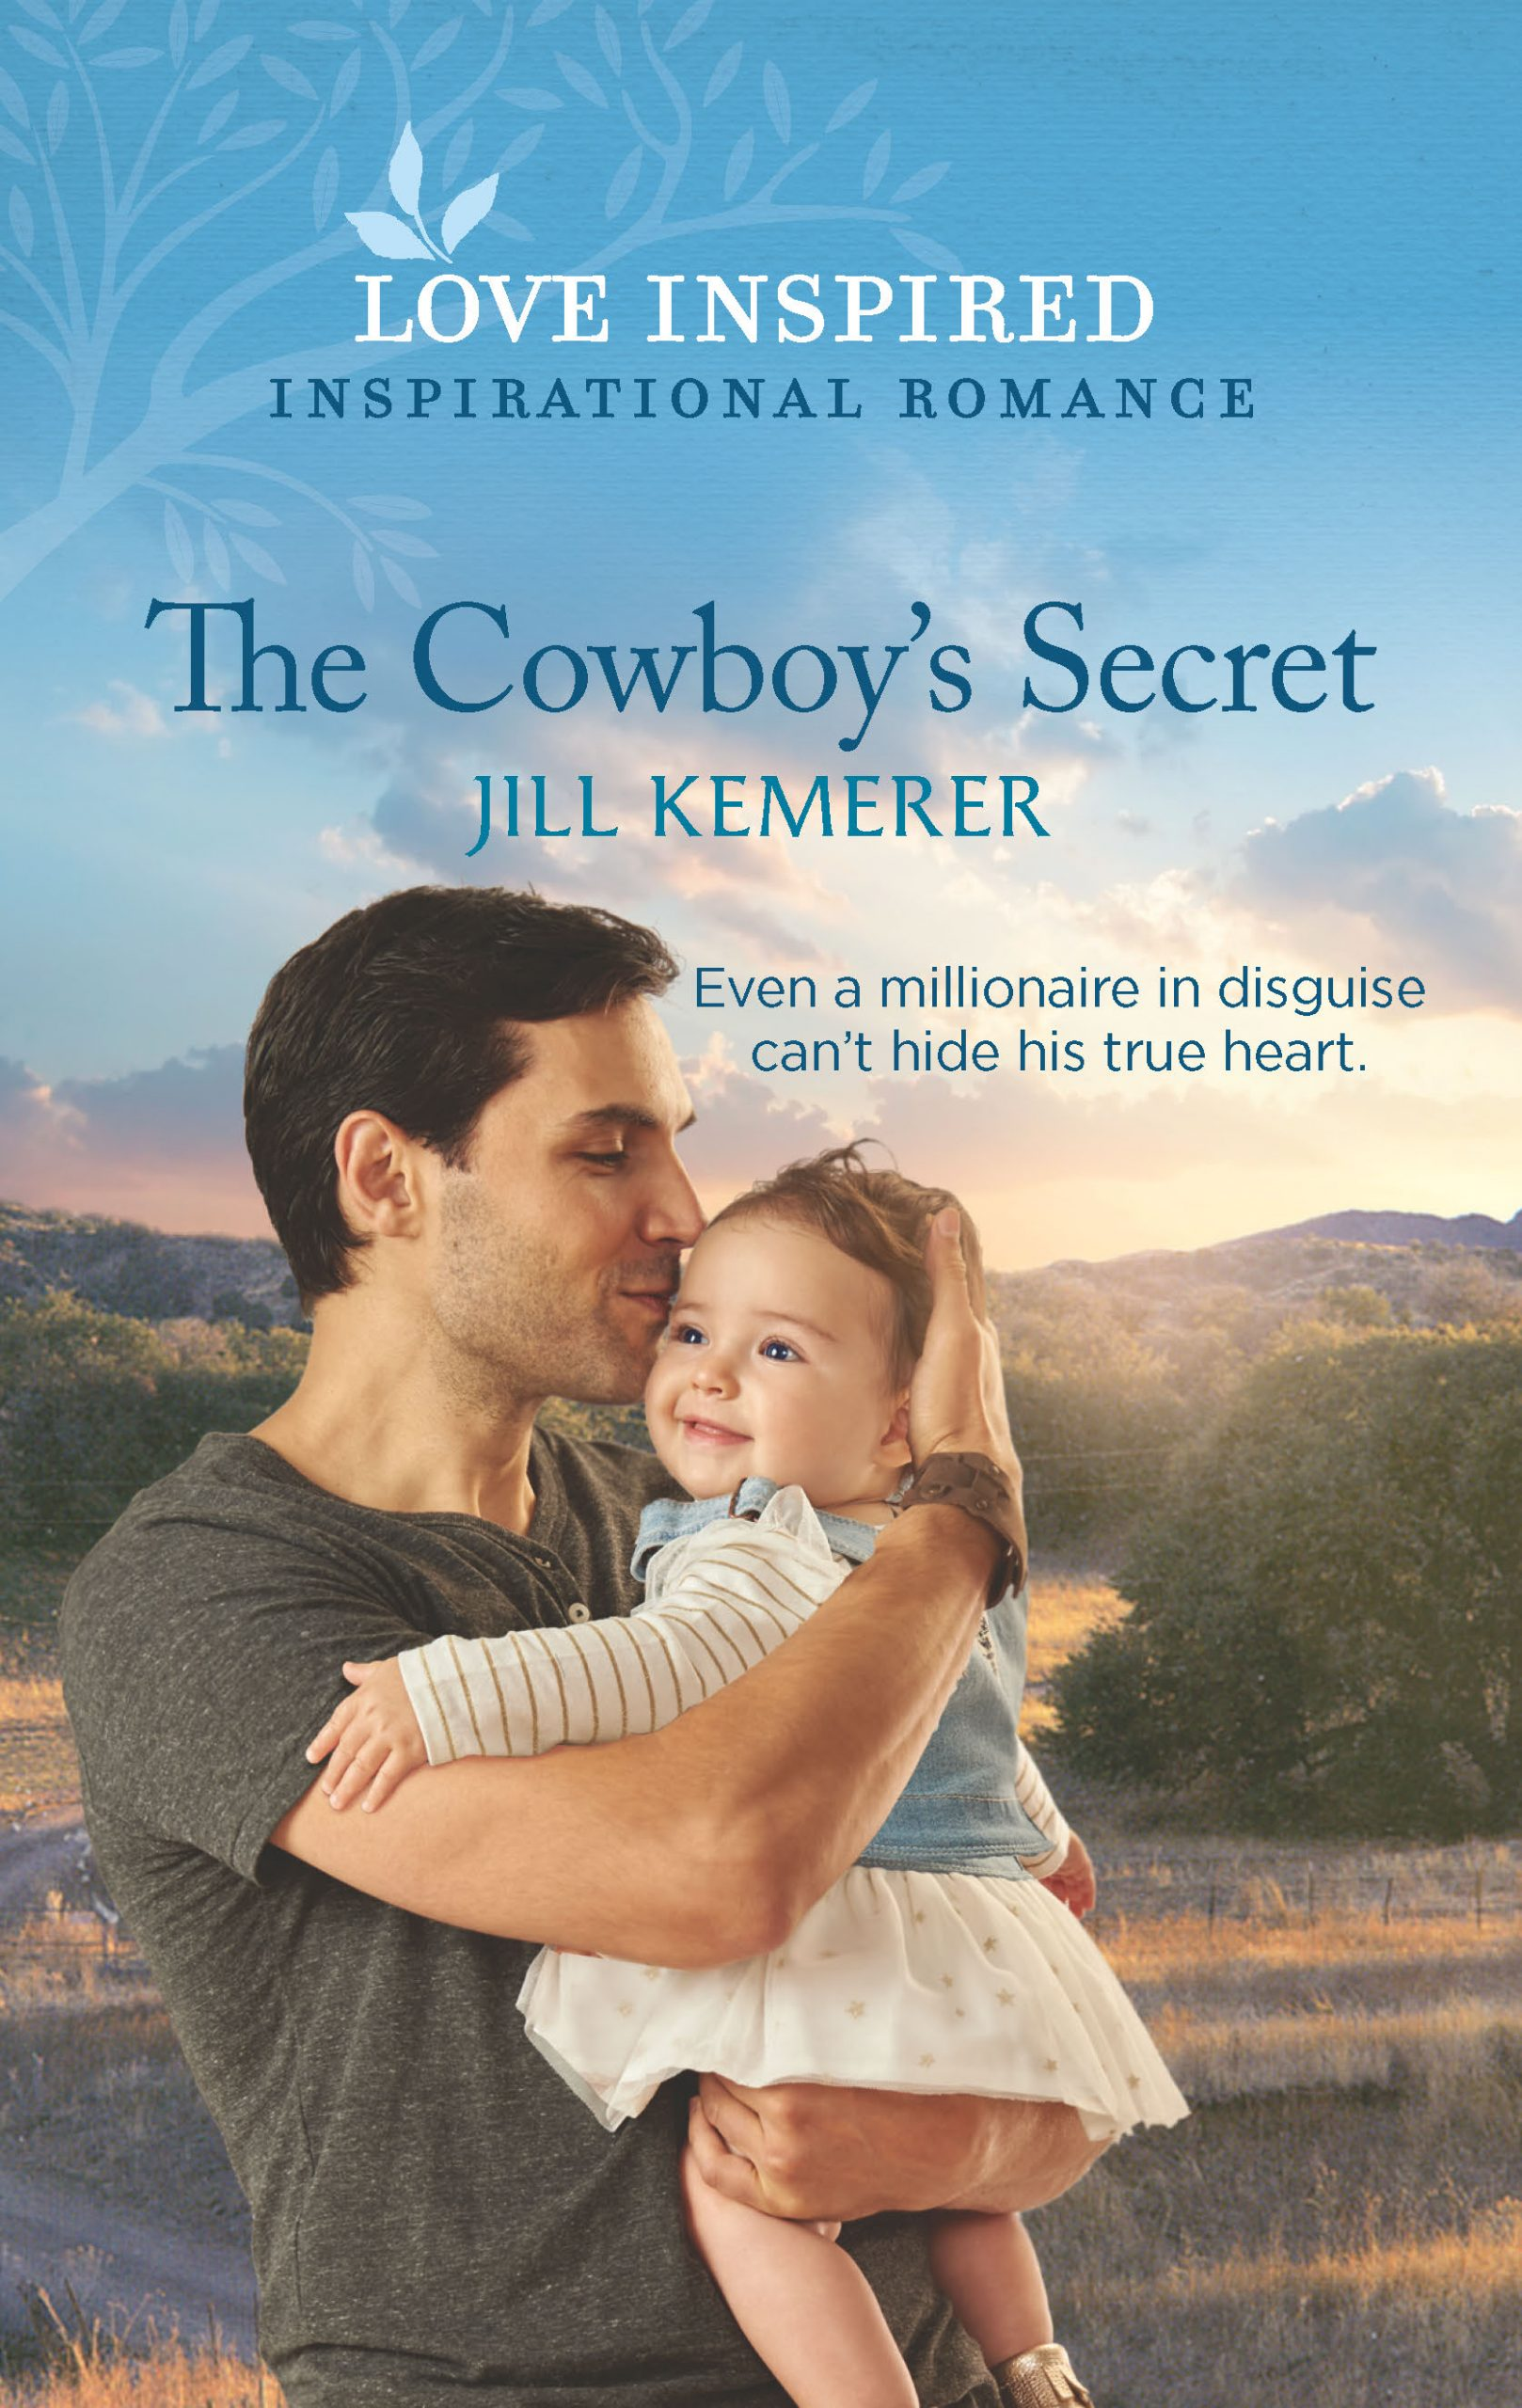 The Cowboy's Secret by Jill Kemerer April 2020